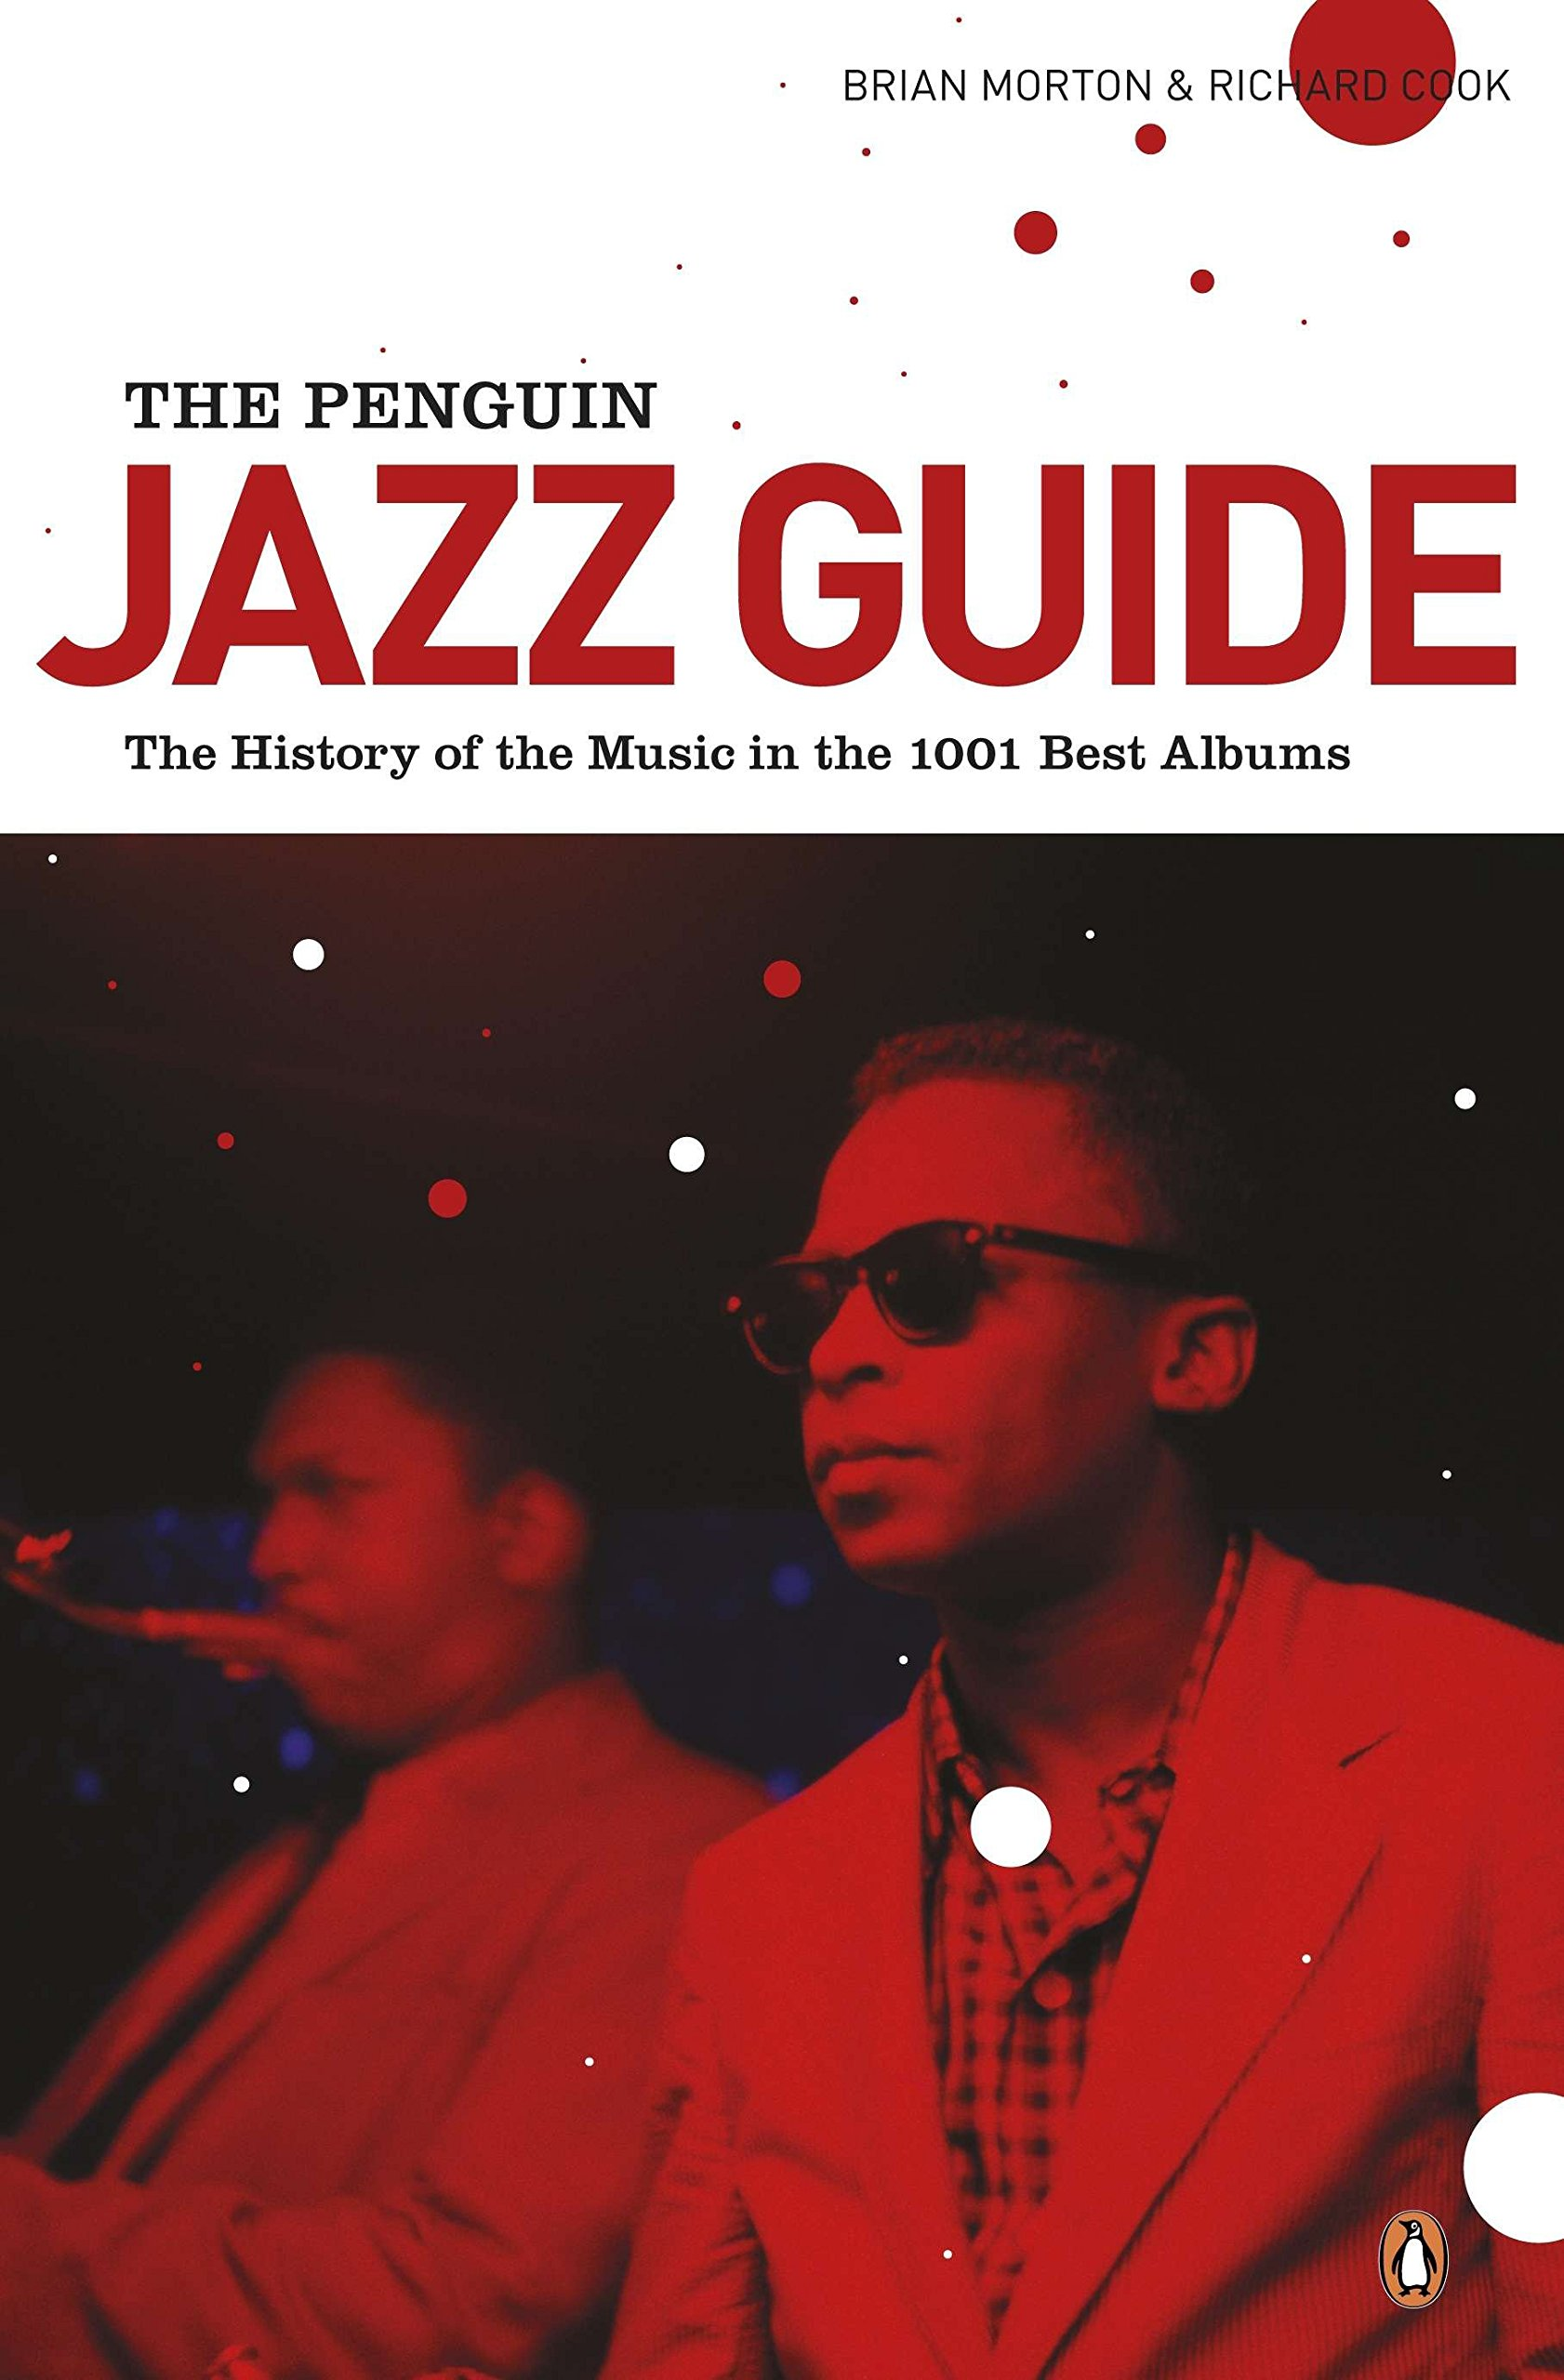 the penguin jazz guide the history of the music in the 1001 best rh amazon com penguin jazz guide core collection penguin jazz guide 1001 best albums